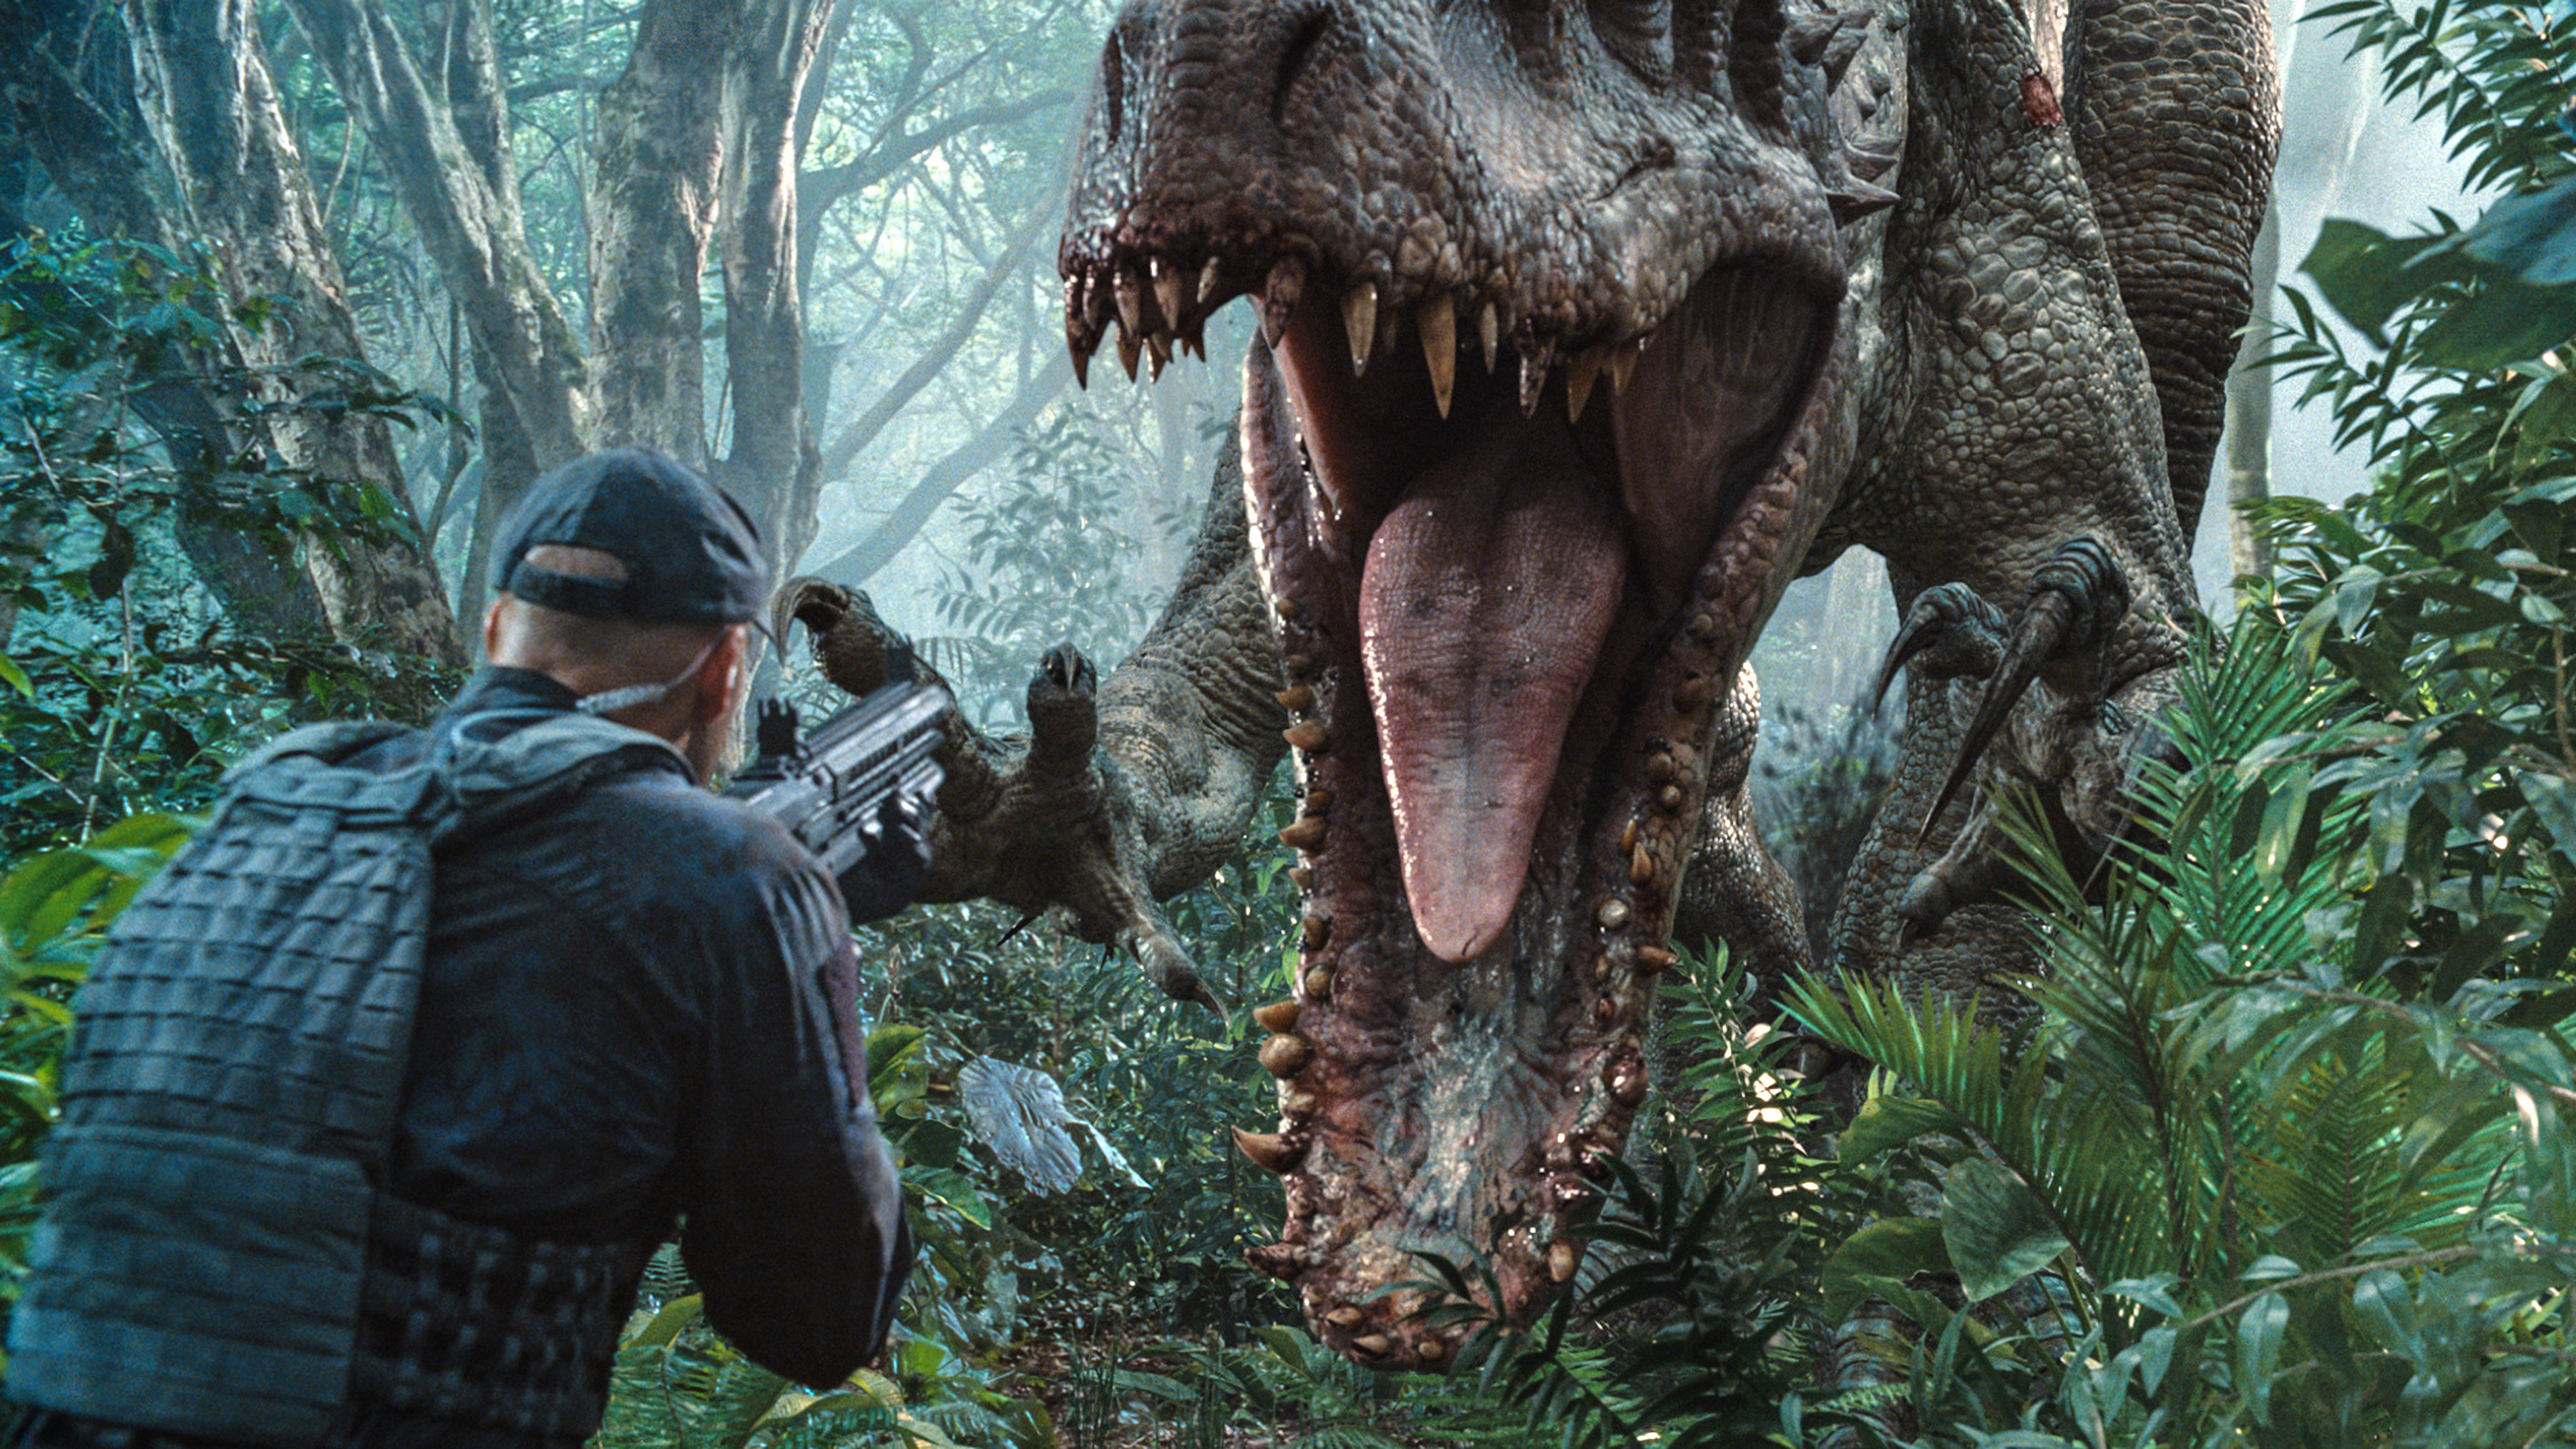 Jurassic World (2015) Review - The Action Elite